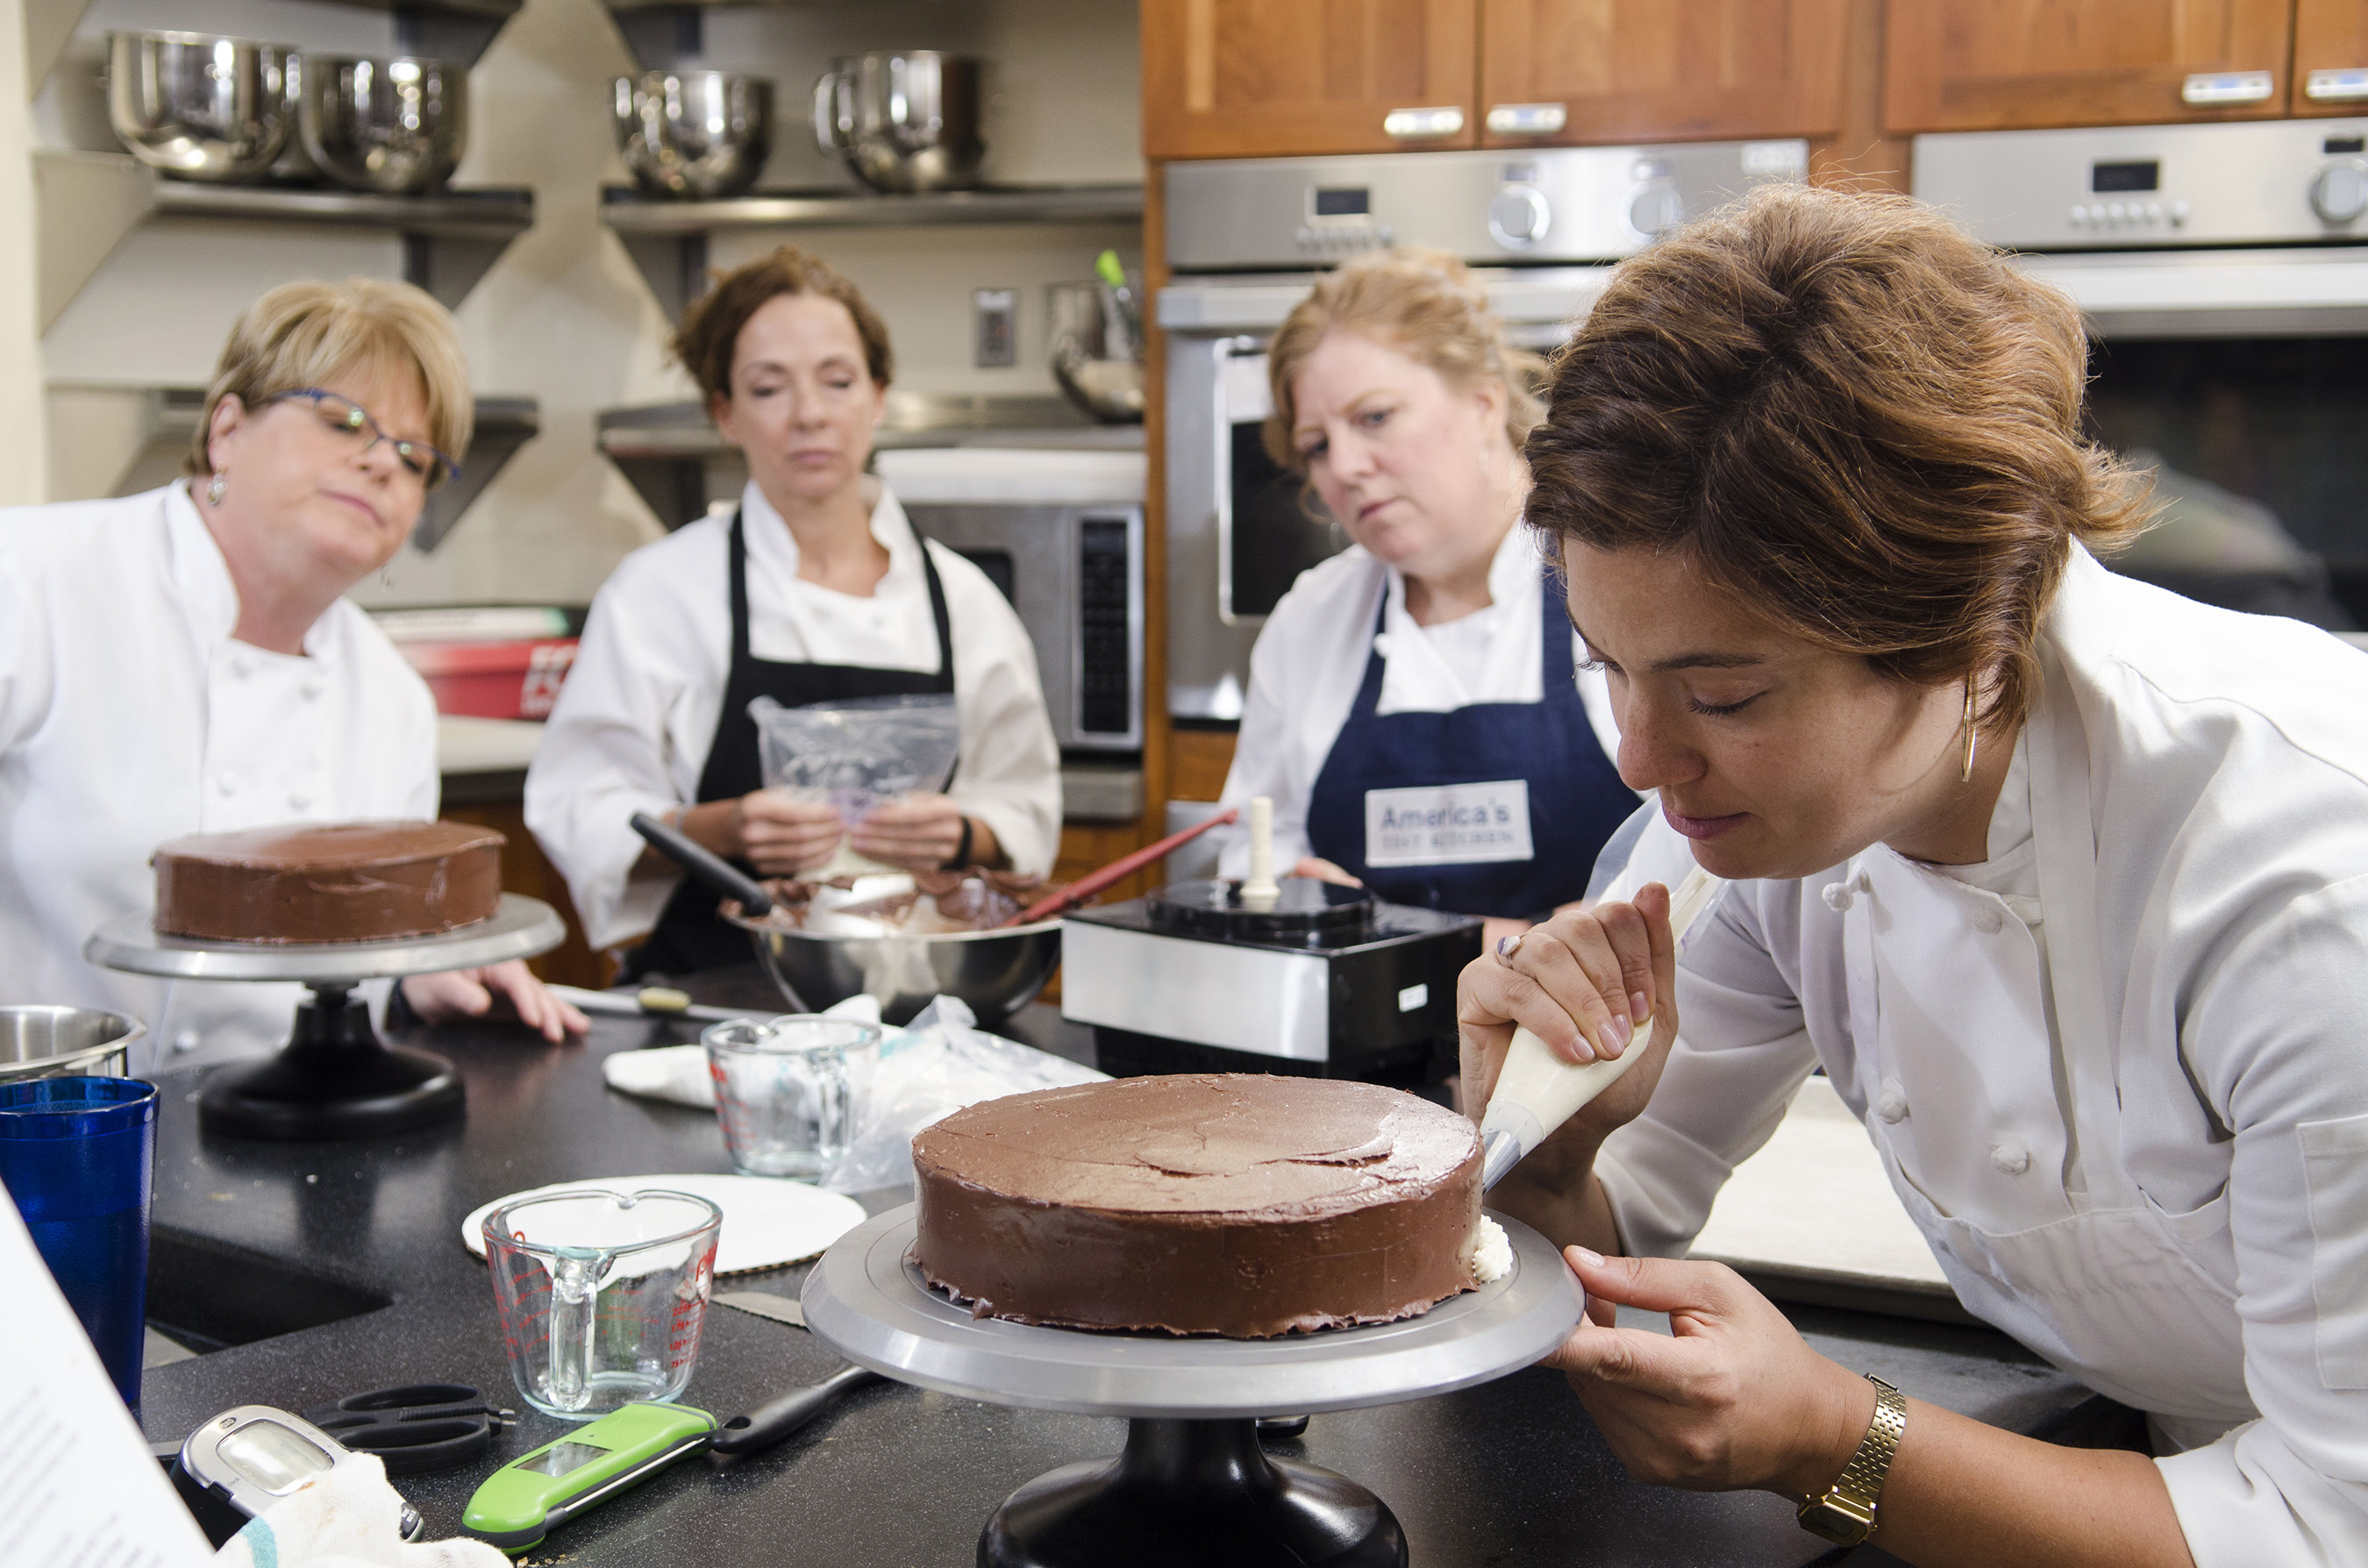 Holland America Line Launches Partnership with Americas Test Kitchen to Bring New Dynamic